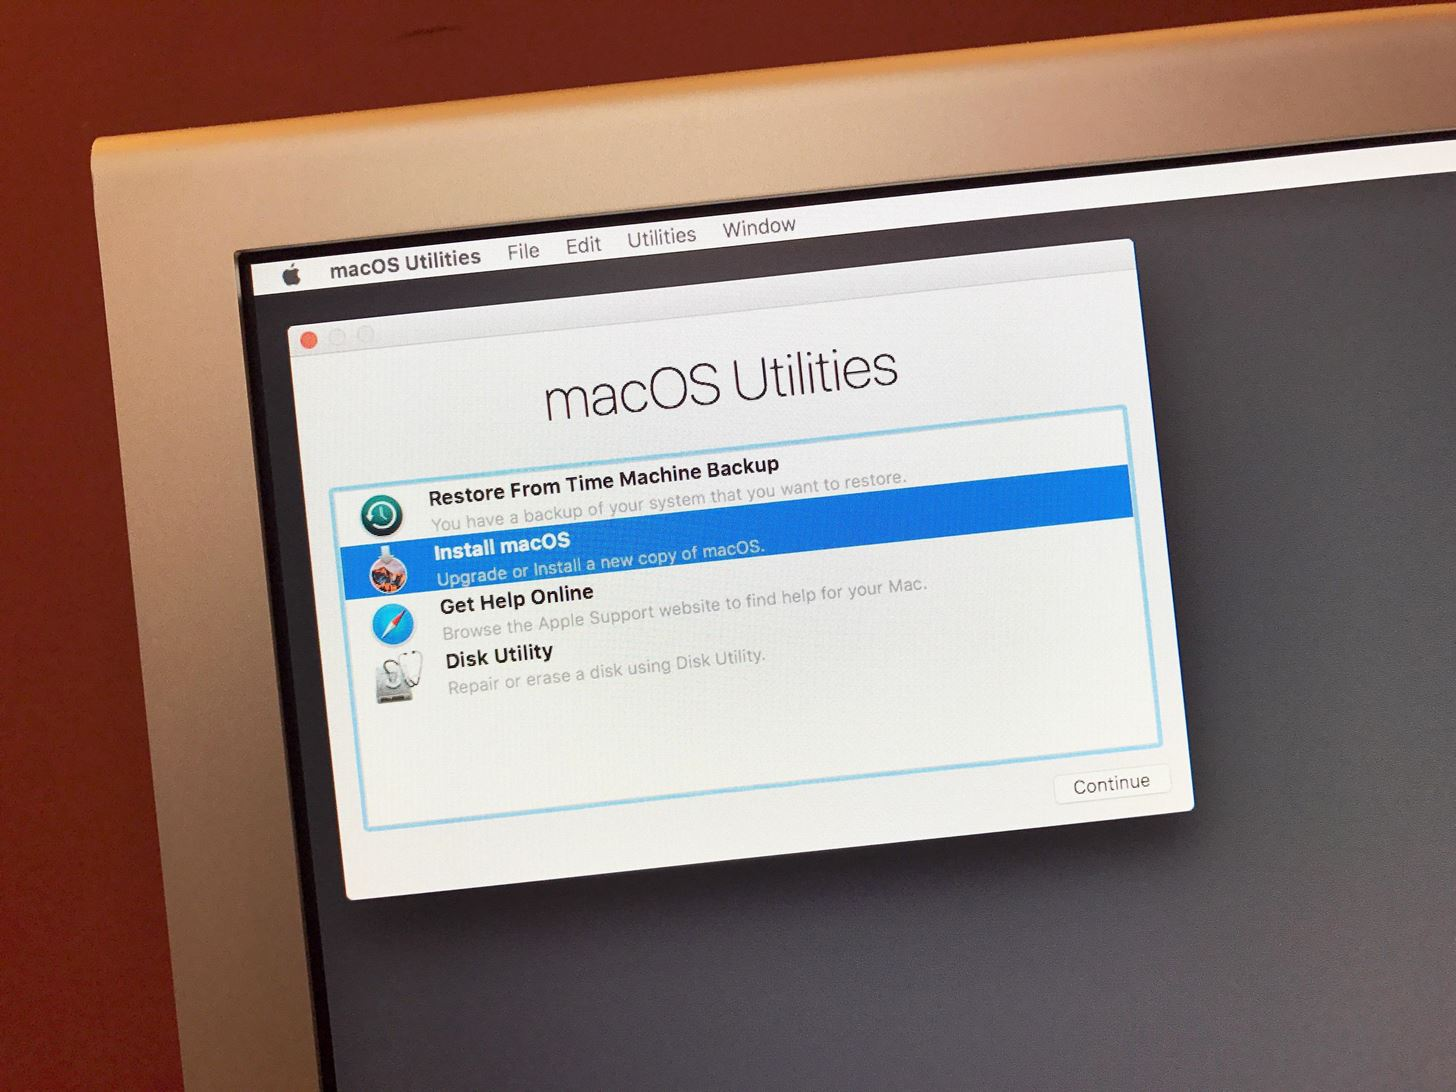 How to Create a Bootable Install USB Drive of macOS 10.12 Sierra